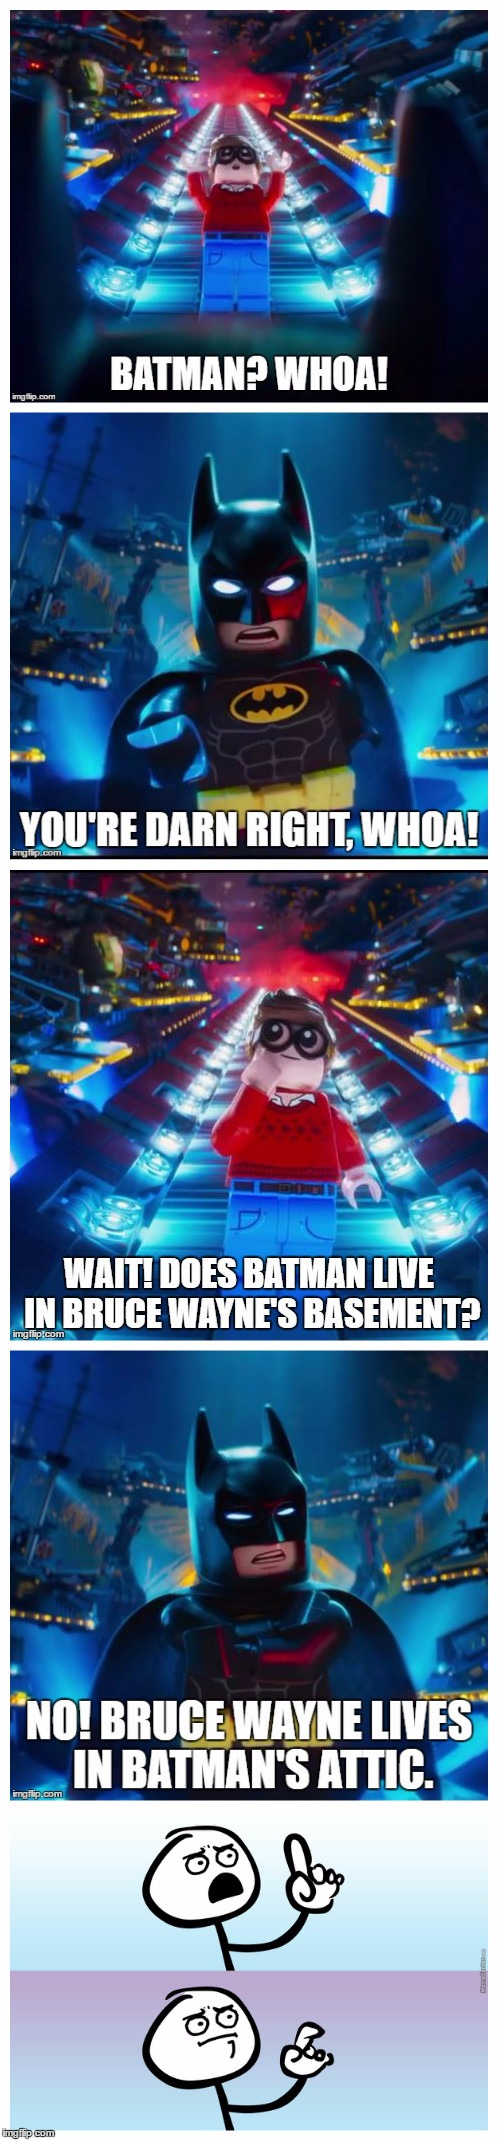 I think this will be way better than the live action dc movies | image tagged in lego,batman,justice league,avengers,dc,marvel | made w/ Imgflip meme maker